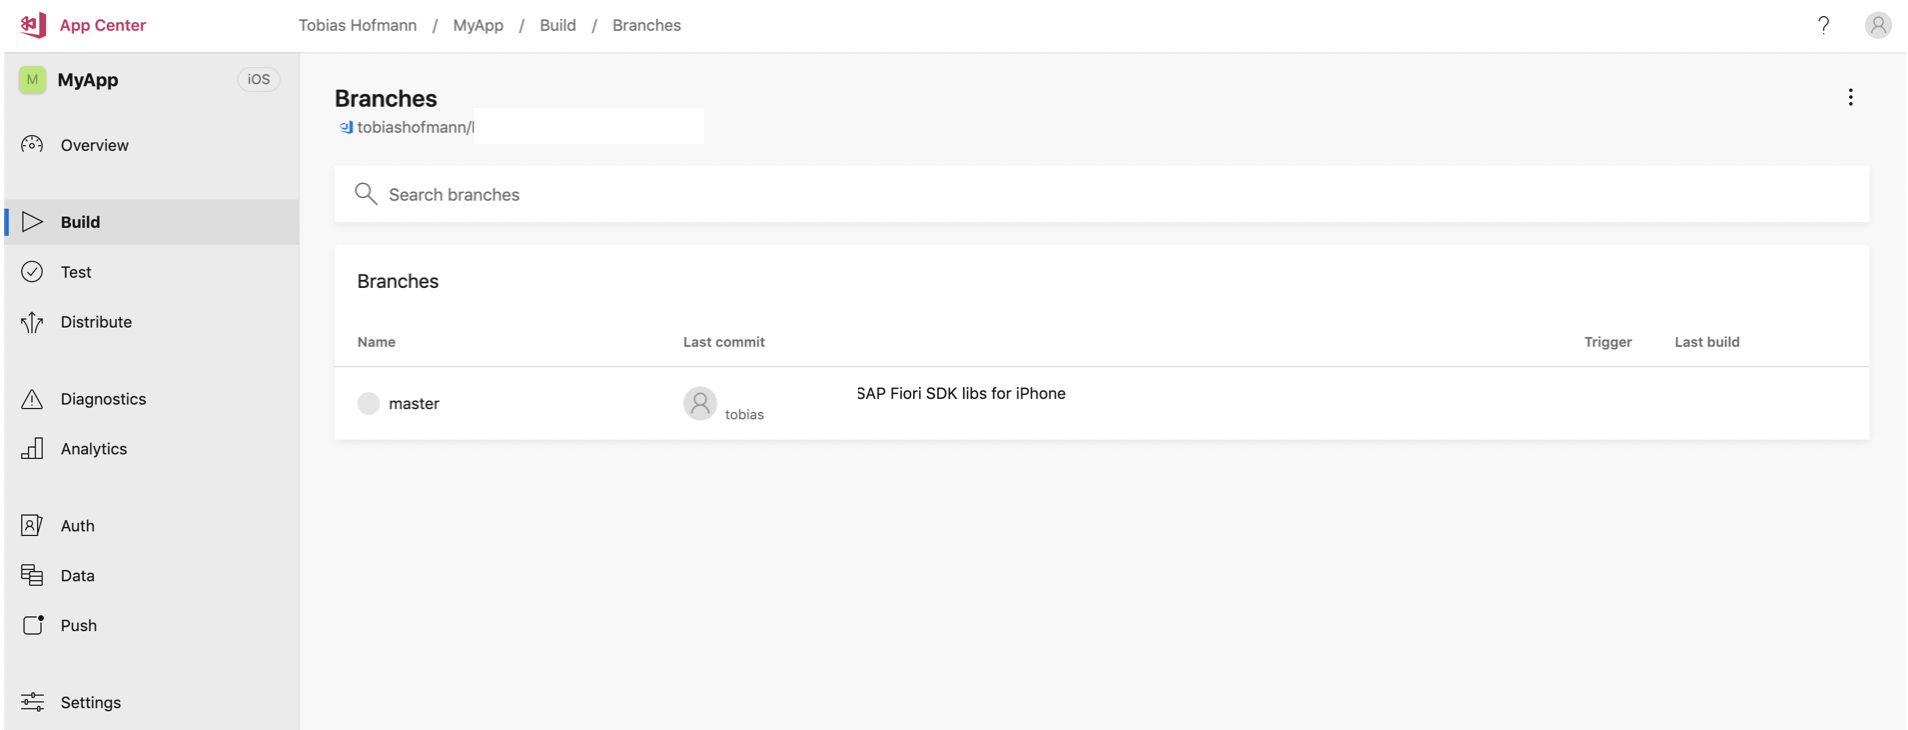 How to publish an iOS App from Microsoft AppCenter to Apple